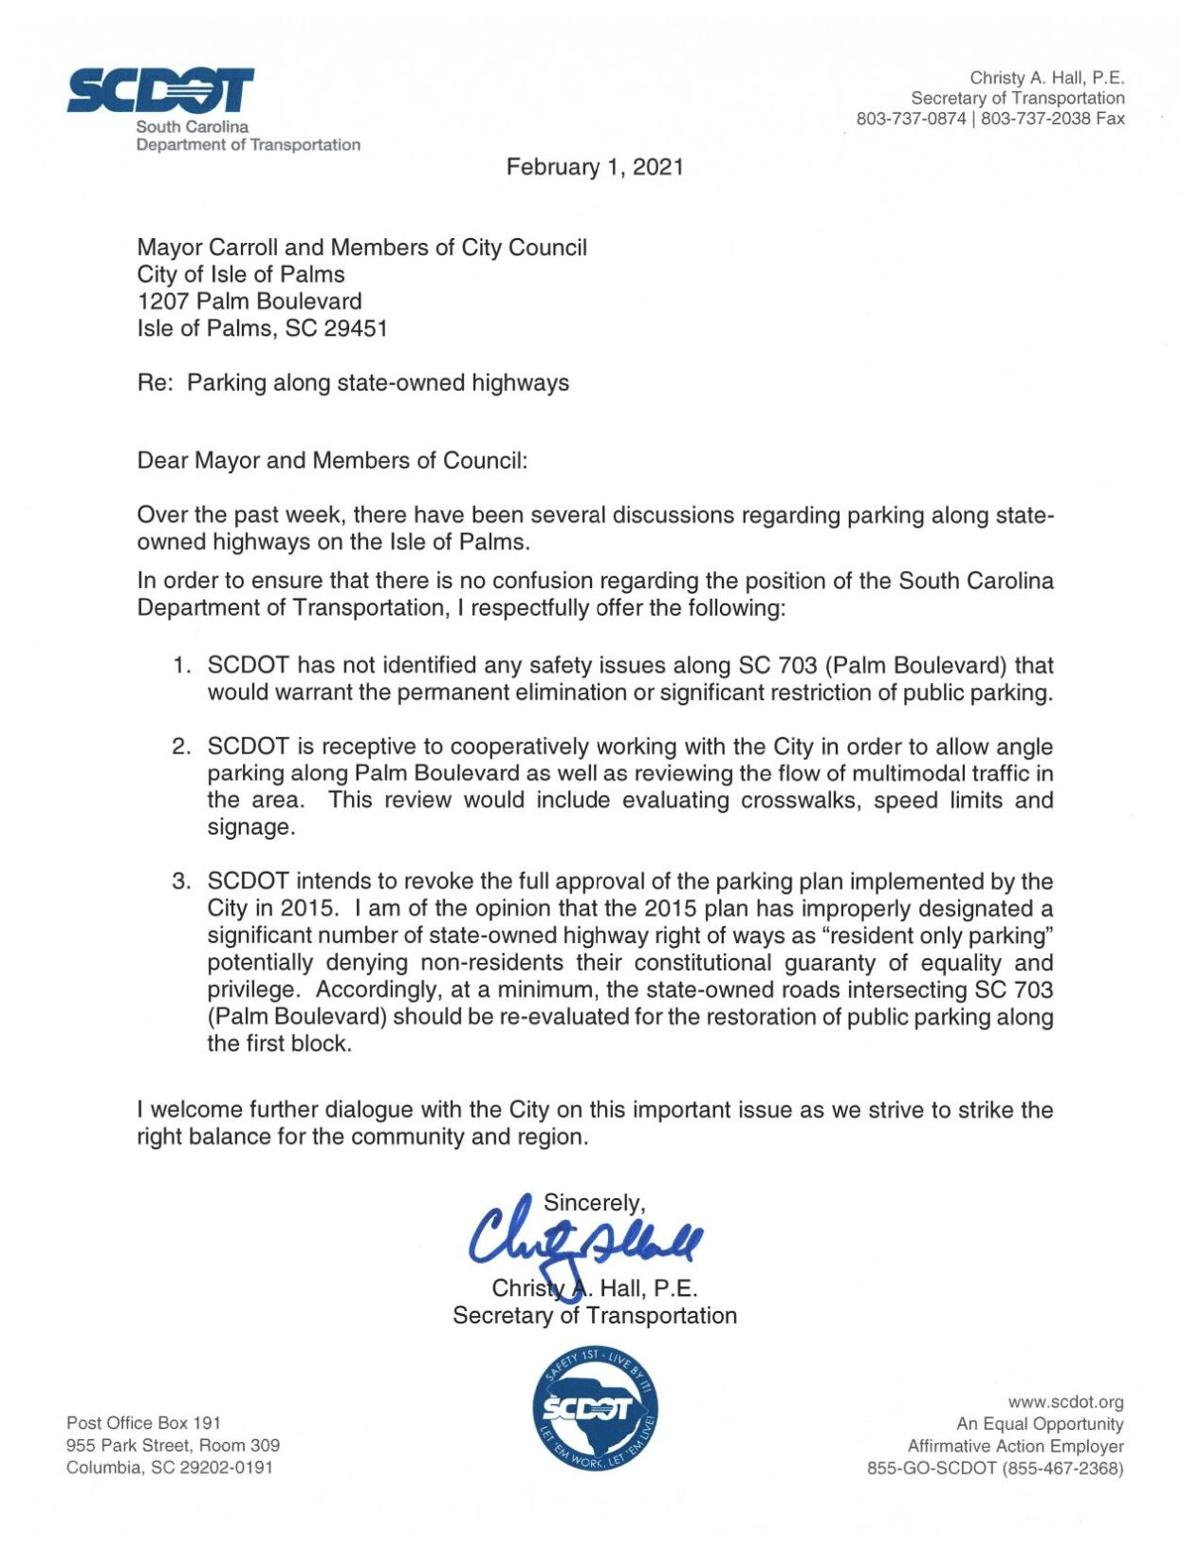 SCDOT letter to Isle of Palms